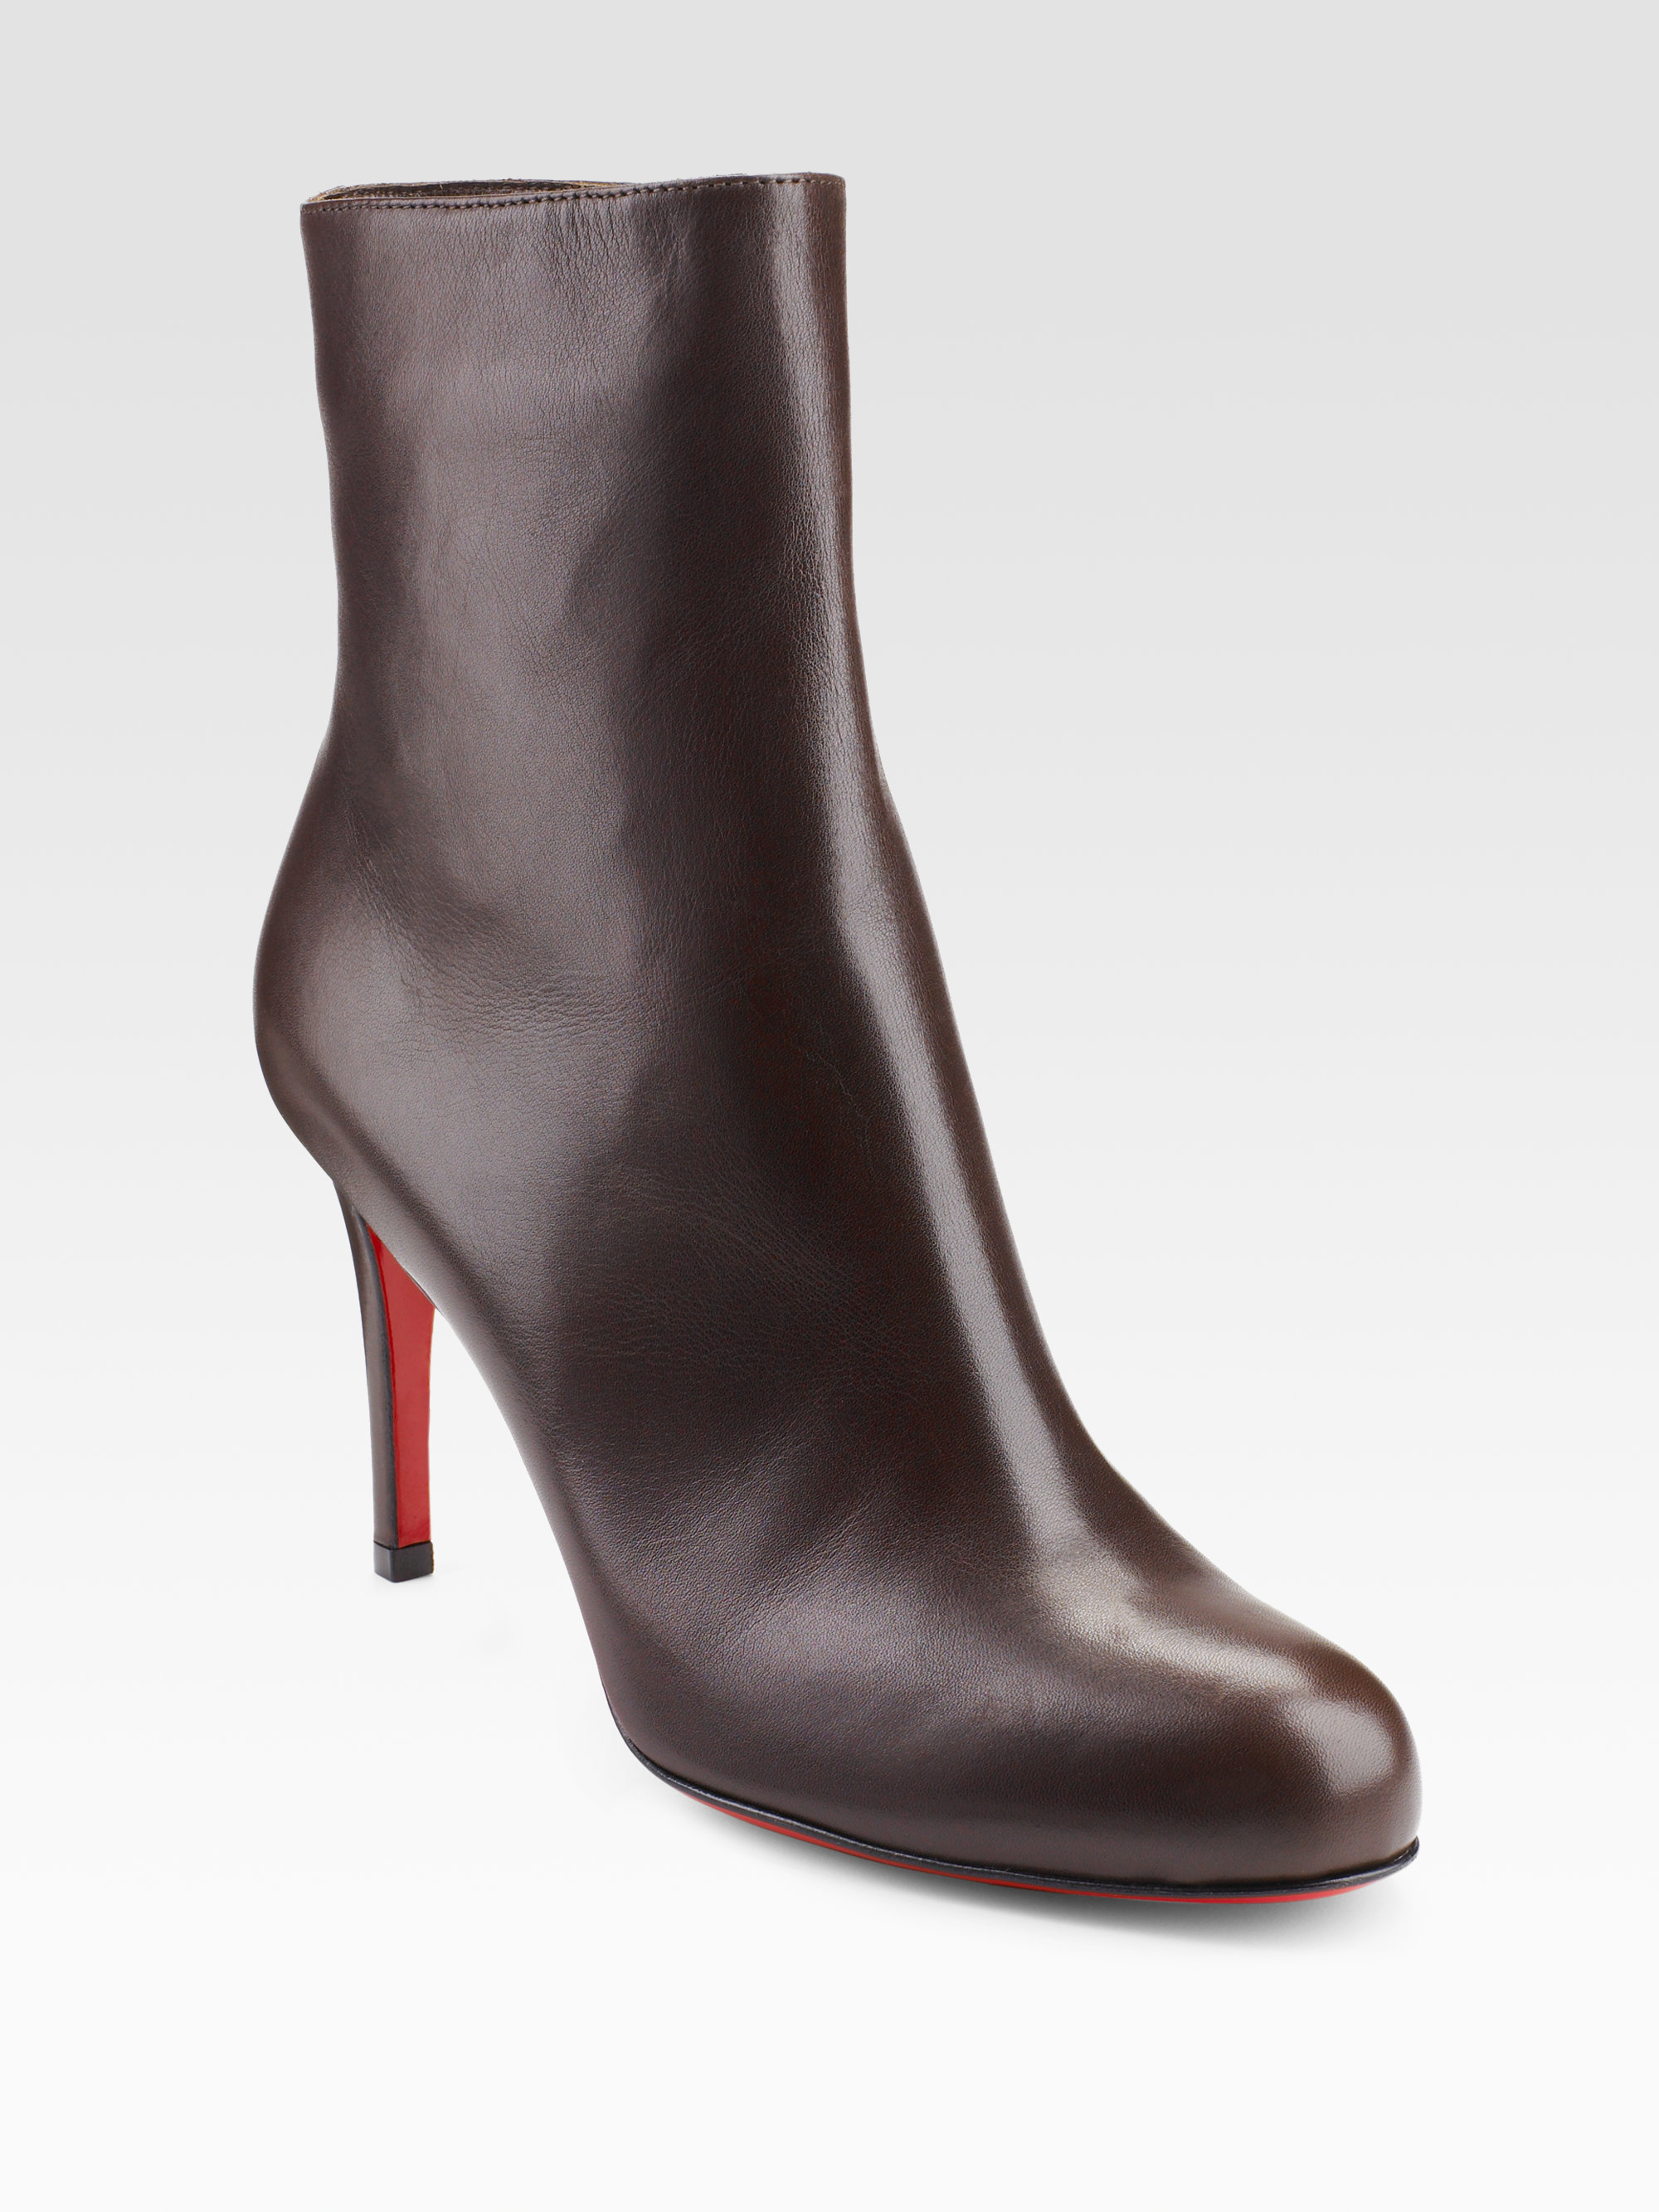 fake christian louboutin shoes for sale - christian louboutin n\u003dankle botos Brown leather stiletto heels ...